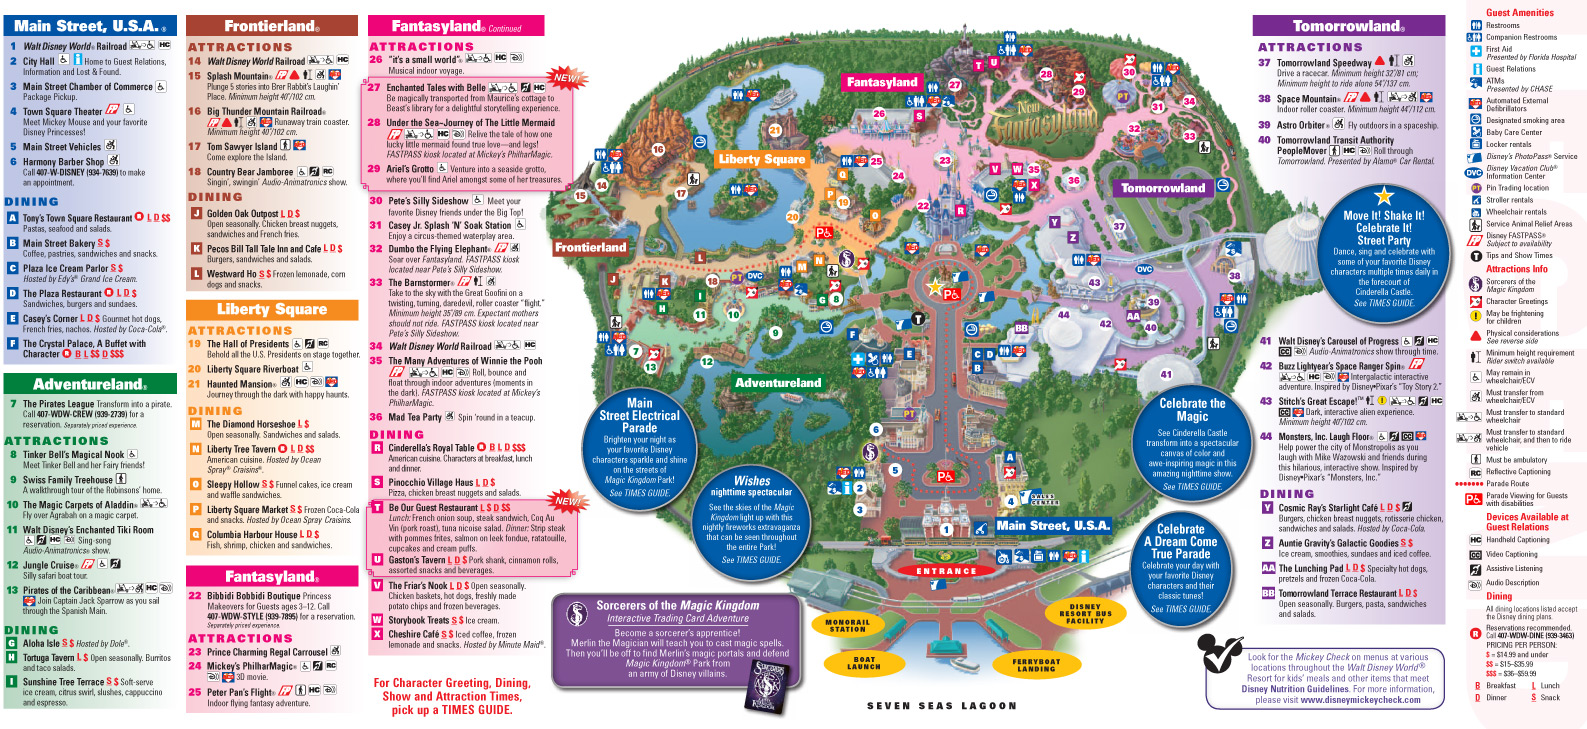 related articles disney world behind the magic